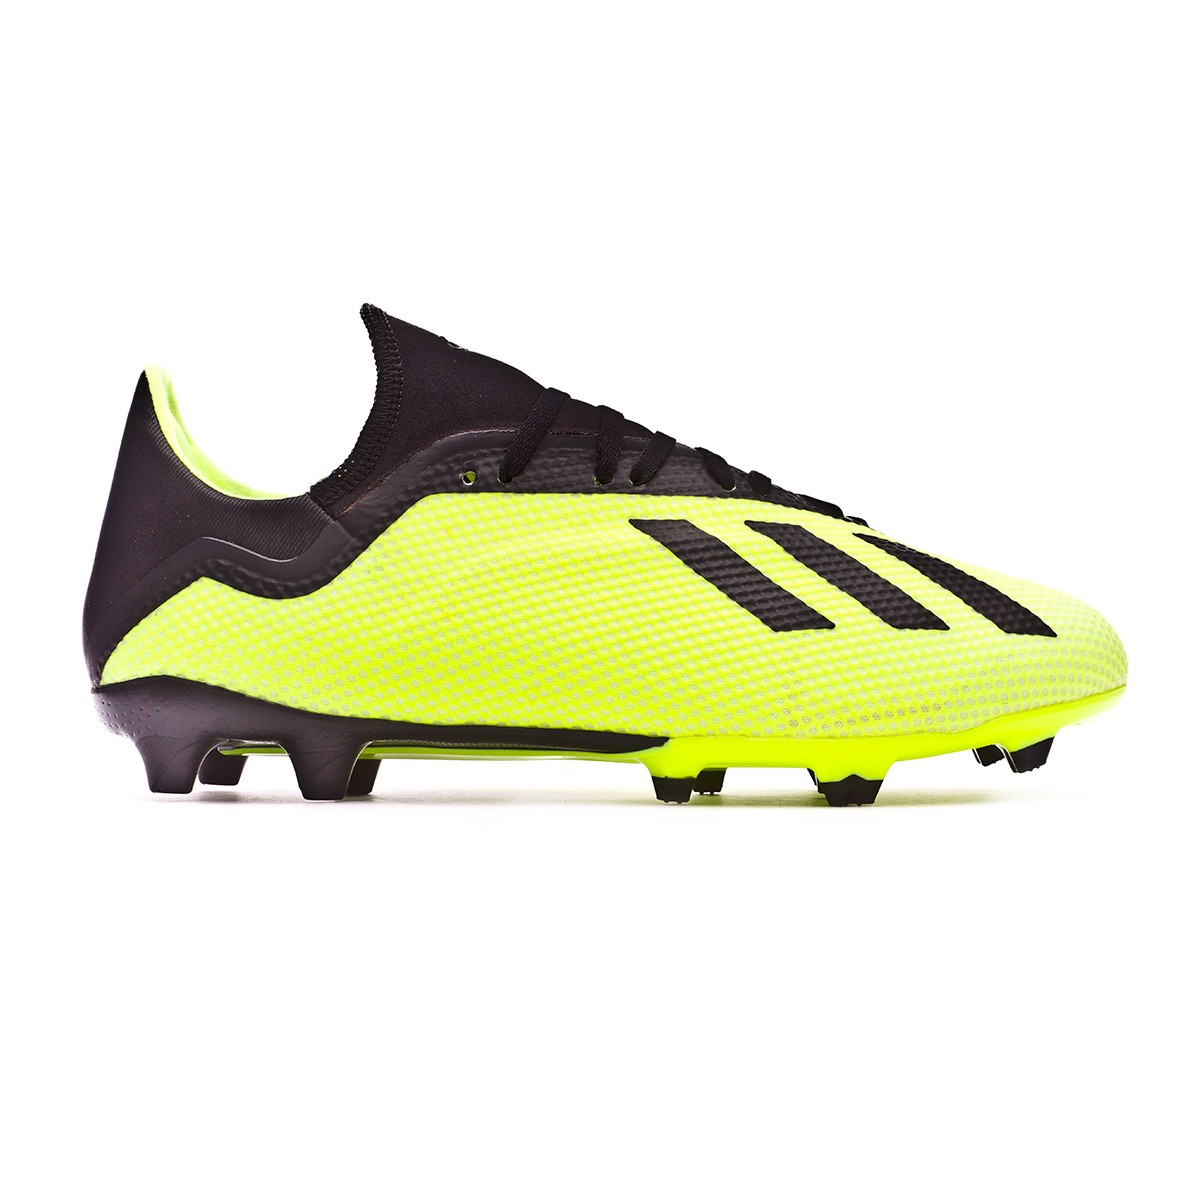 ae86cb99d Football Boots adidas X 18.3 FG Solar yellow-Core black-White - Football  store Fútbol Emotion